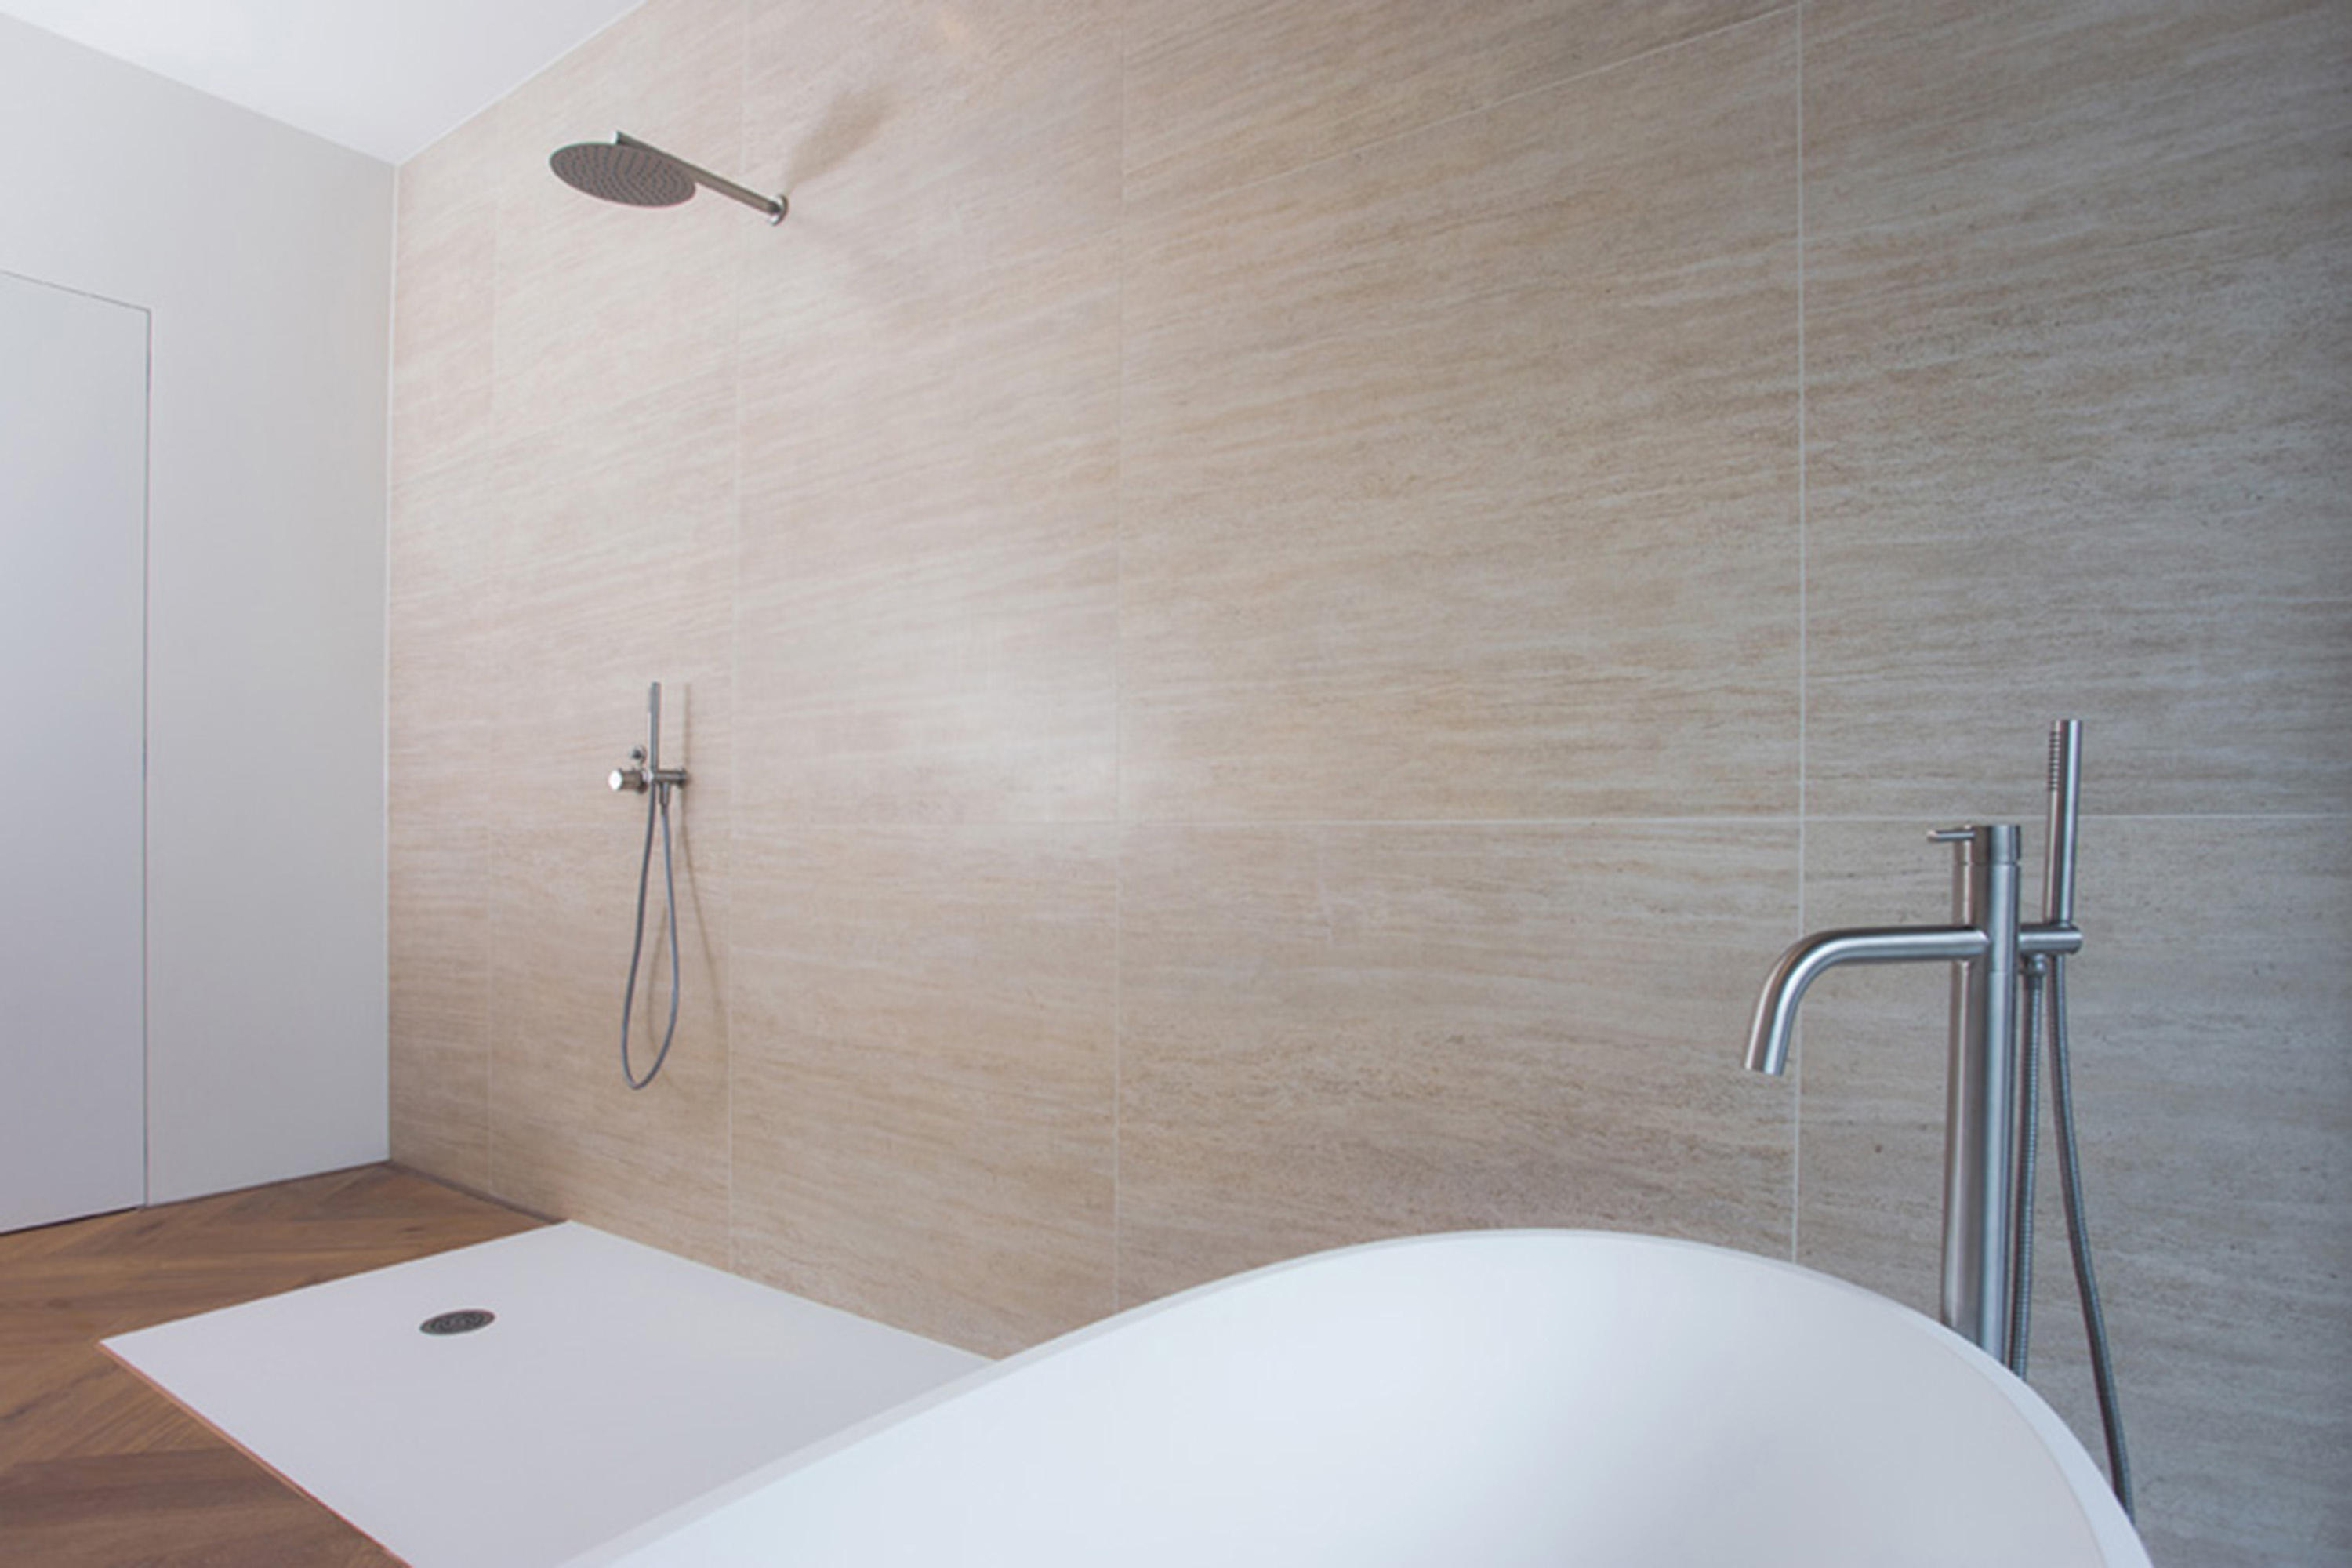 MONO 40 | FLOOR MOUNTED BATH MIXER WITH HAND SHOWER - Bath taps from ...